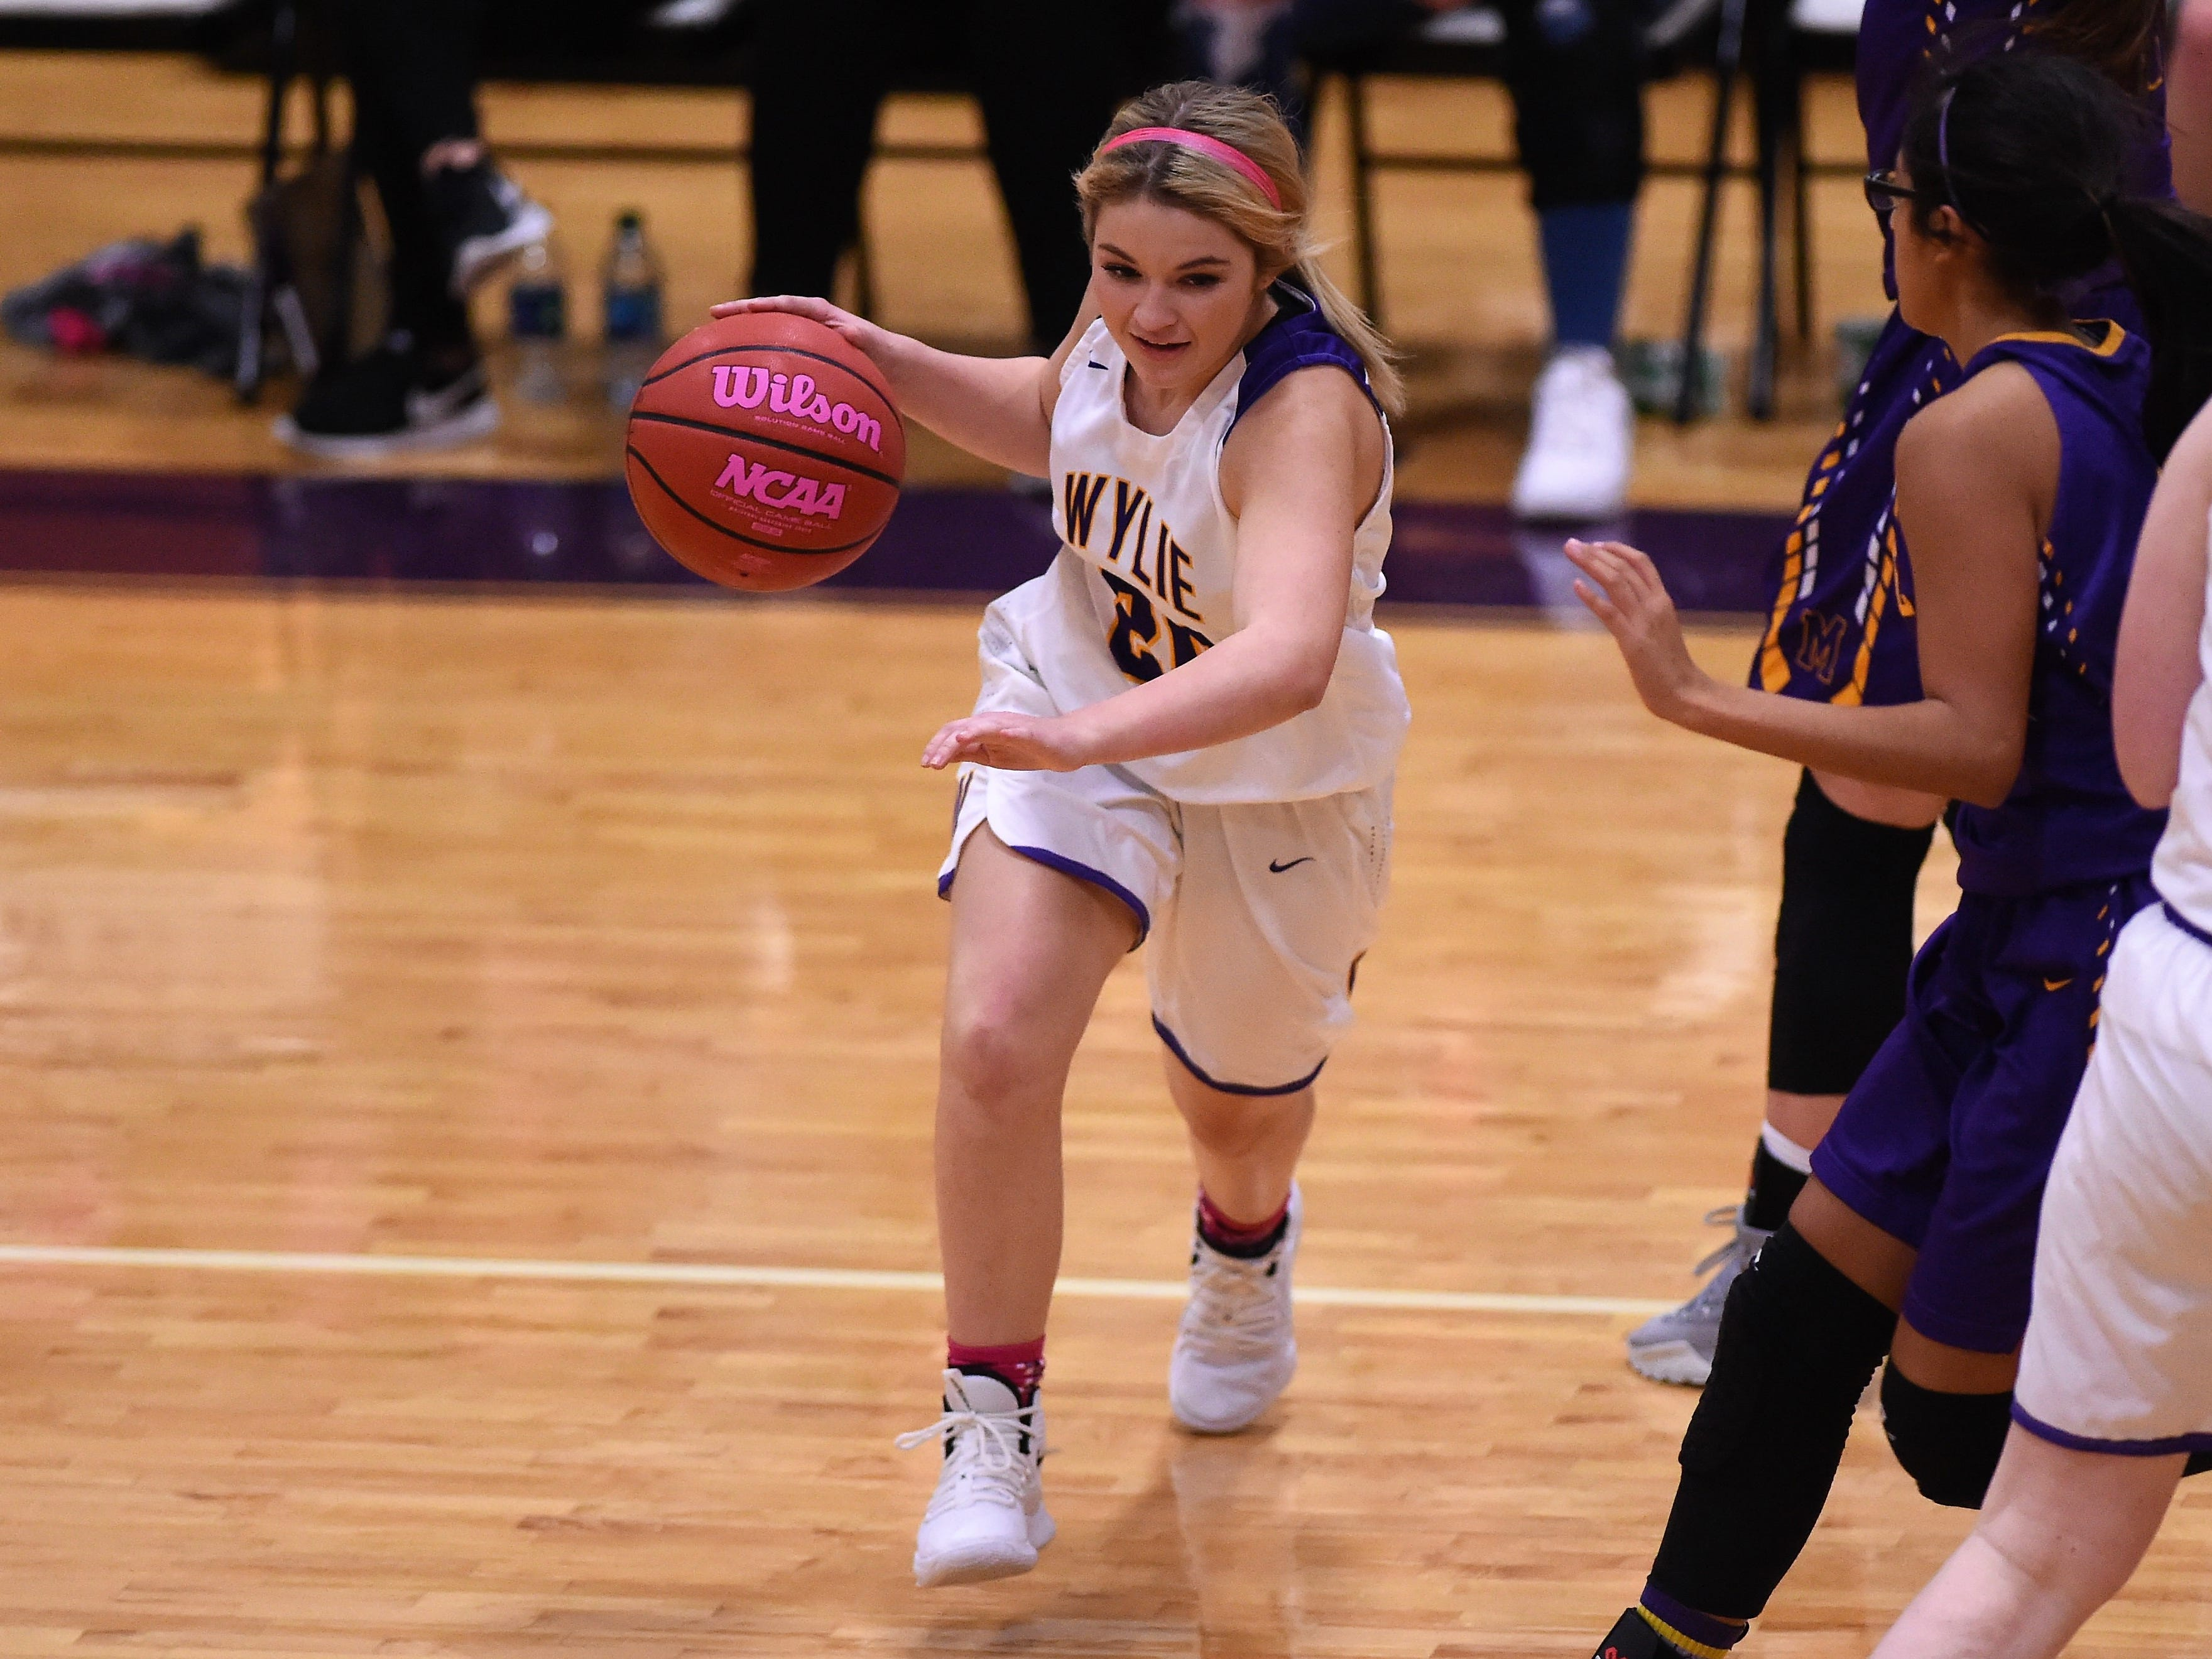 Wylie's Grace Steadman (20) goes around a Merkel defender during the Coaches vs. Cancer Pink Out game on Tuesday, Dec. 4, 2018. The Lady Bulldogs won 75-39.